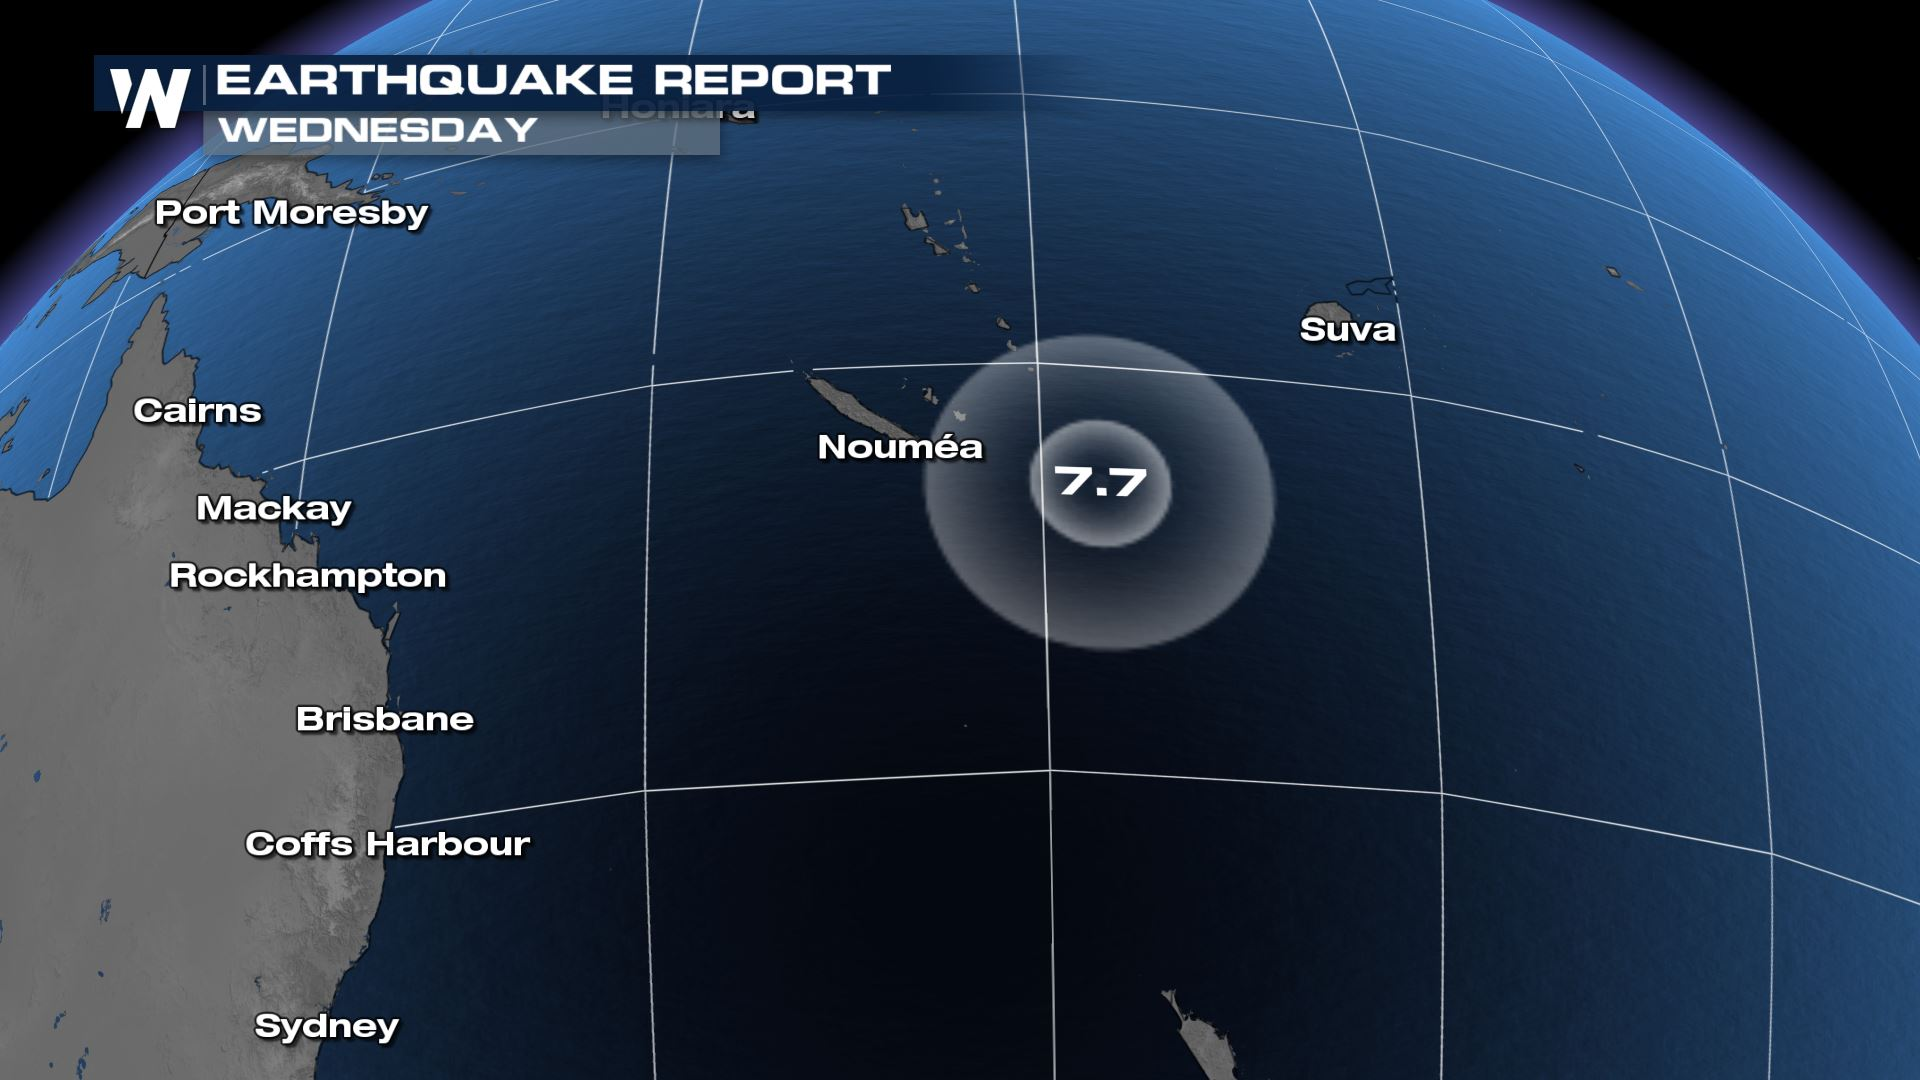 Tsunami Confirmed After Major Earthquake Reported Southwest of Fiji